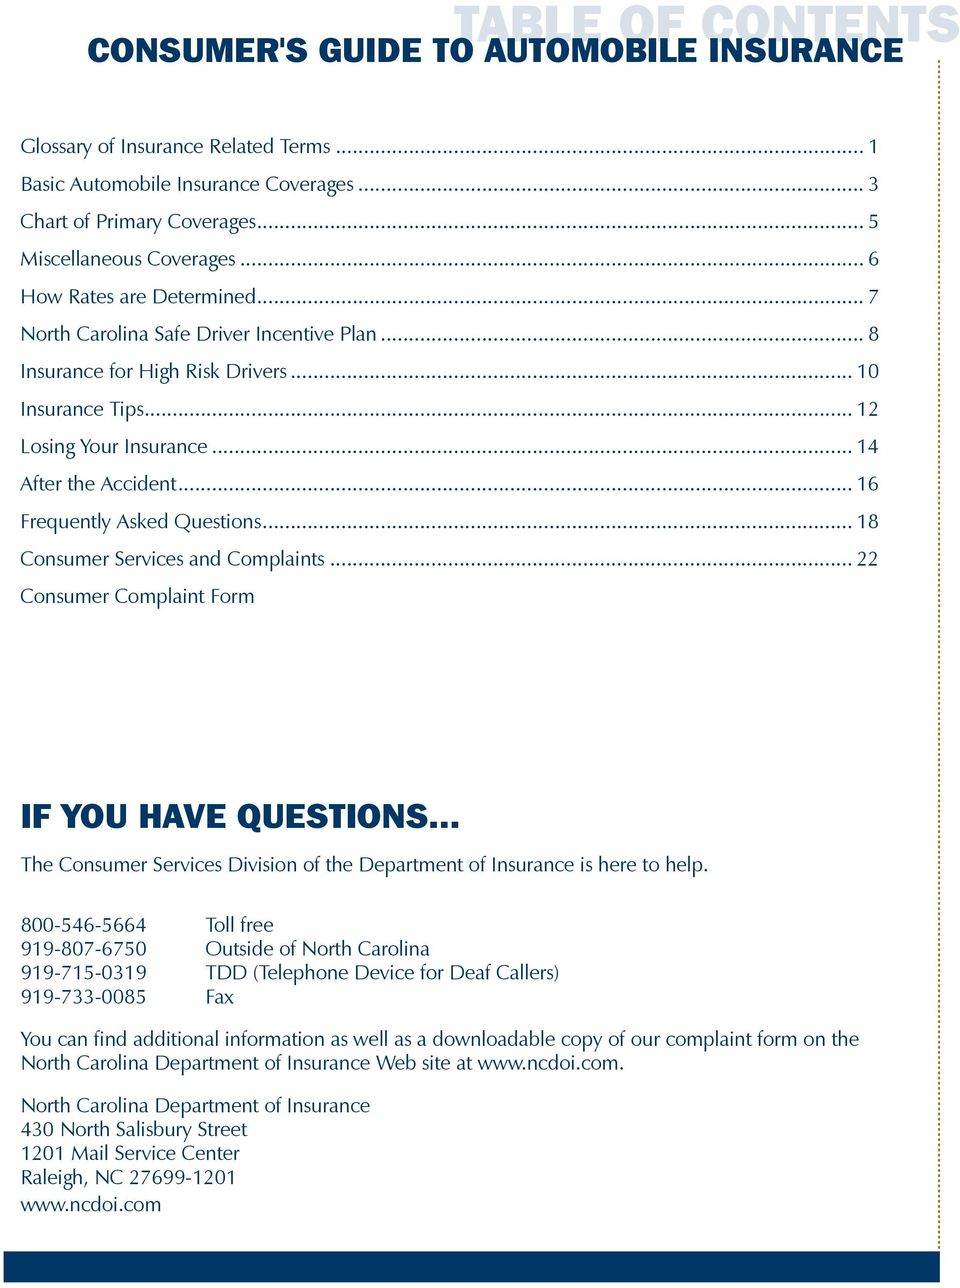 .. 16 Frequently Asked Questions... 18 Consumer Services and Complaints... 22 Consumer Complaint Form IF YOU HAVE QUESTIONS.